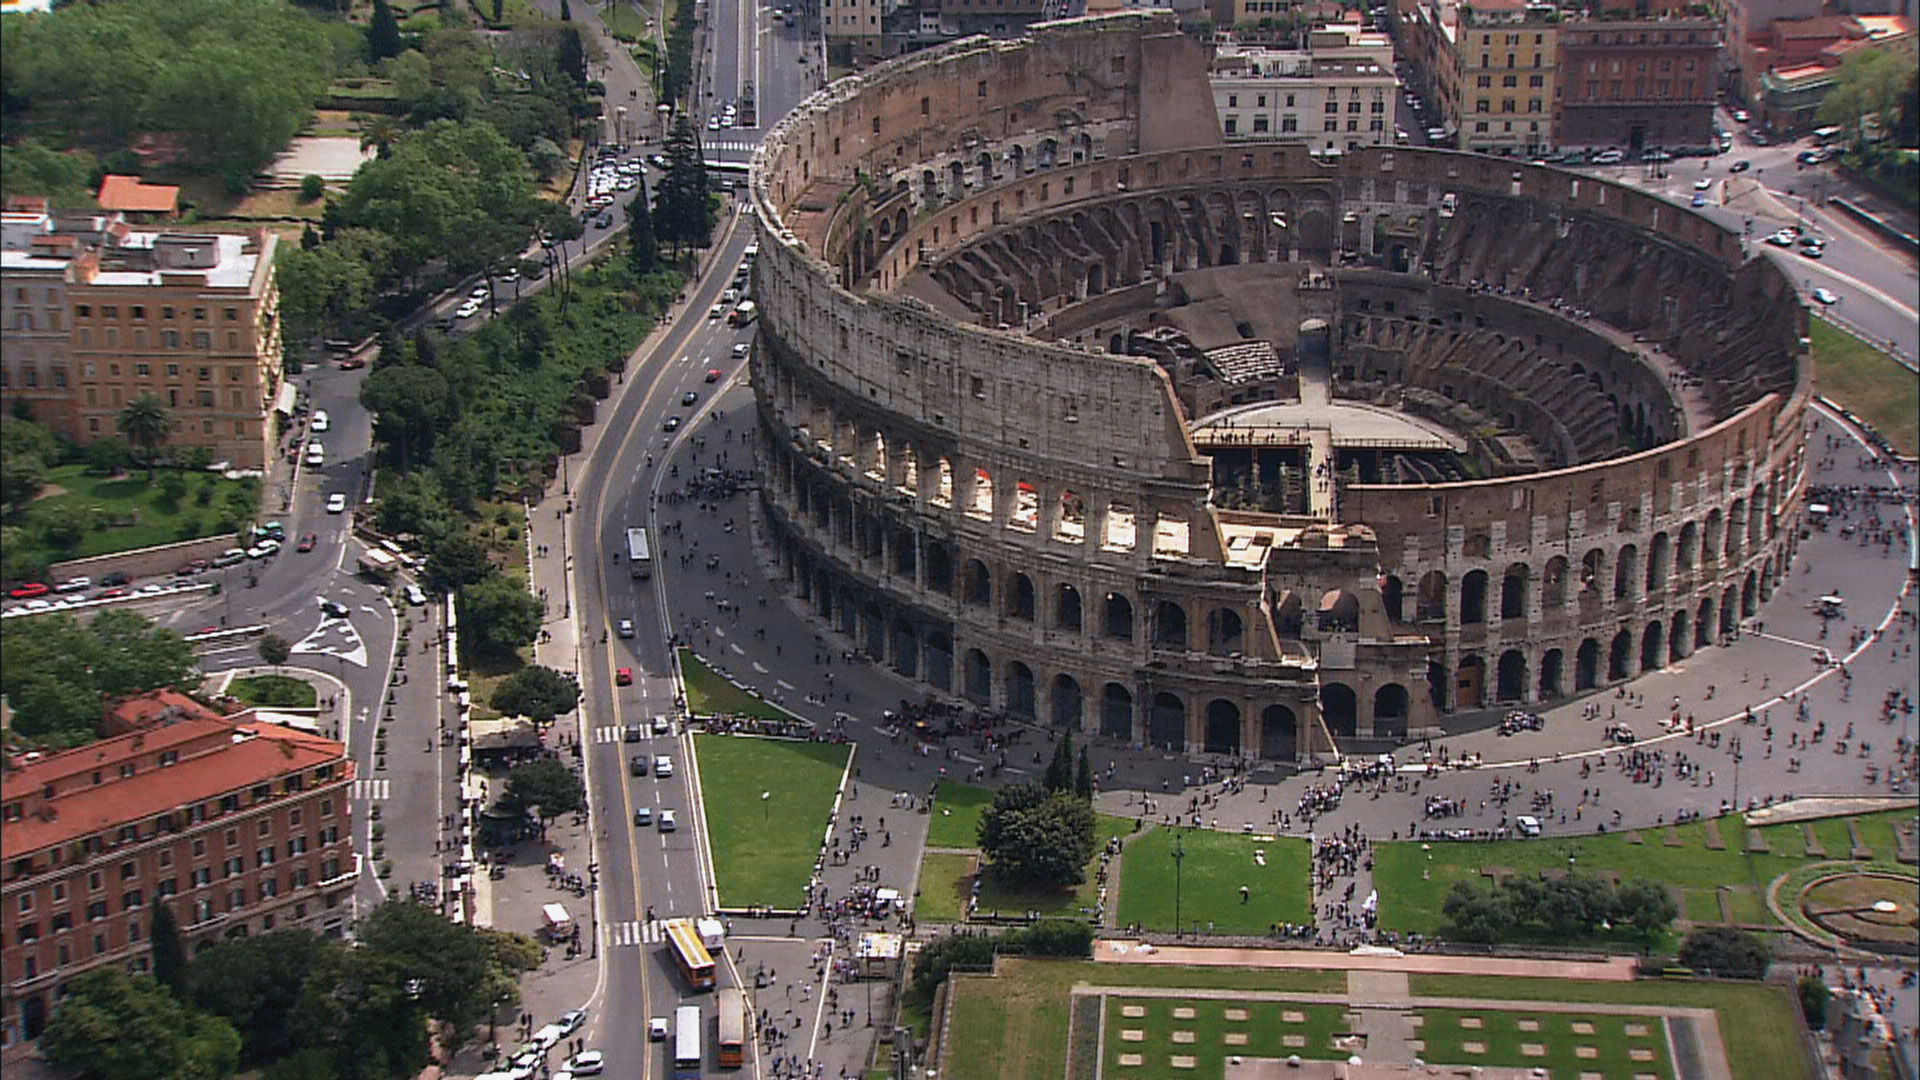 The Colosseum and surrounding city provide a striking juxtaposition of ancient and modern Rome.